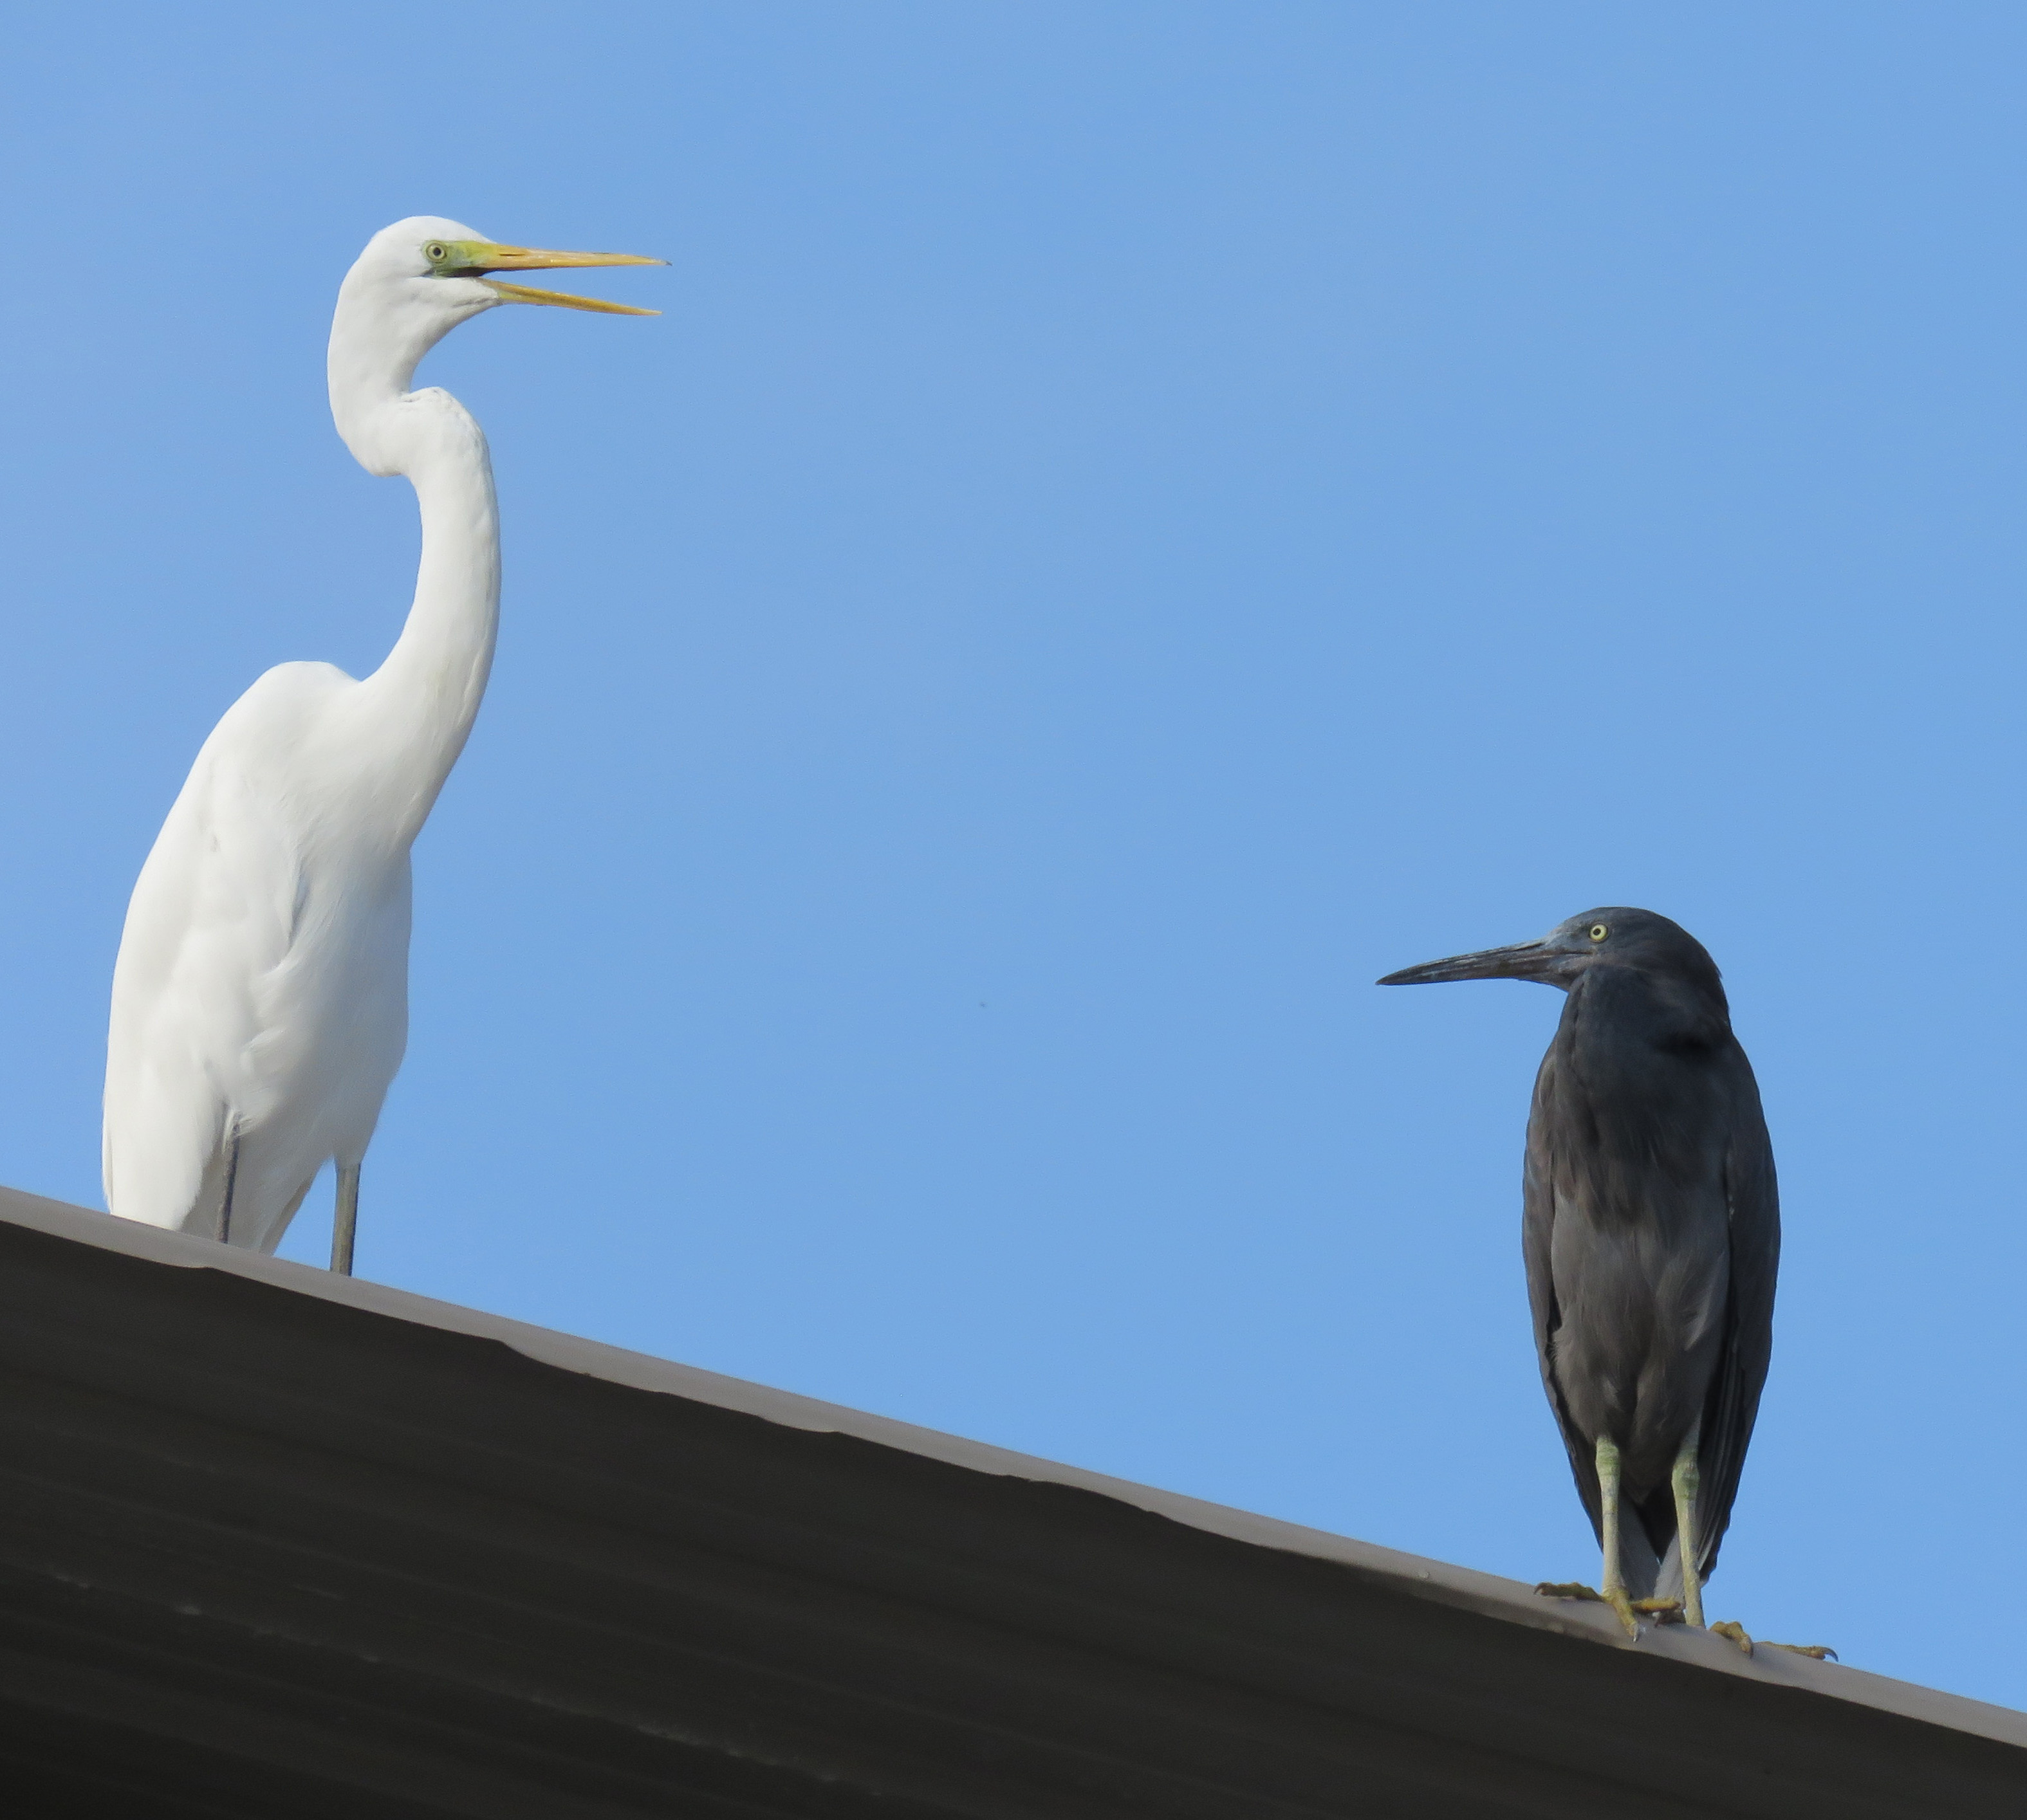 Roof-top Egrets. Photo by Randy Weisser.